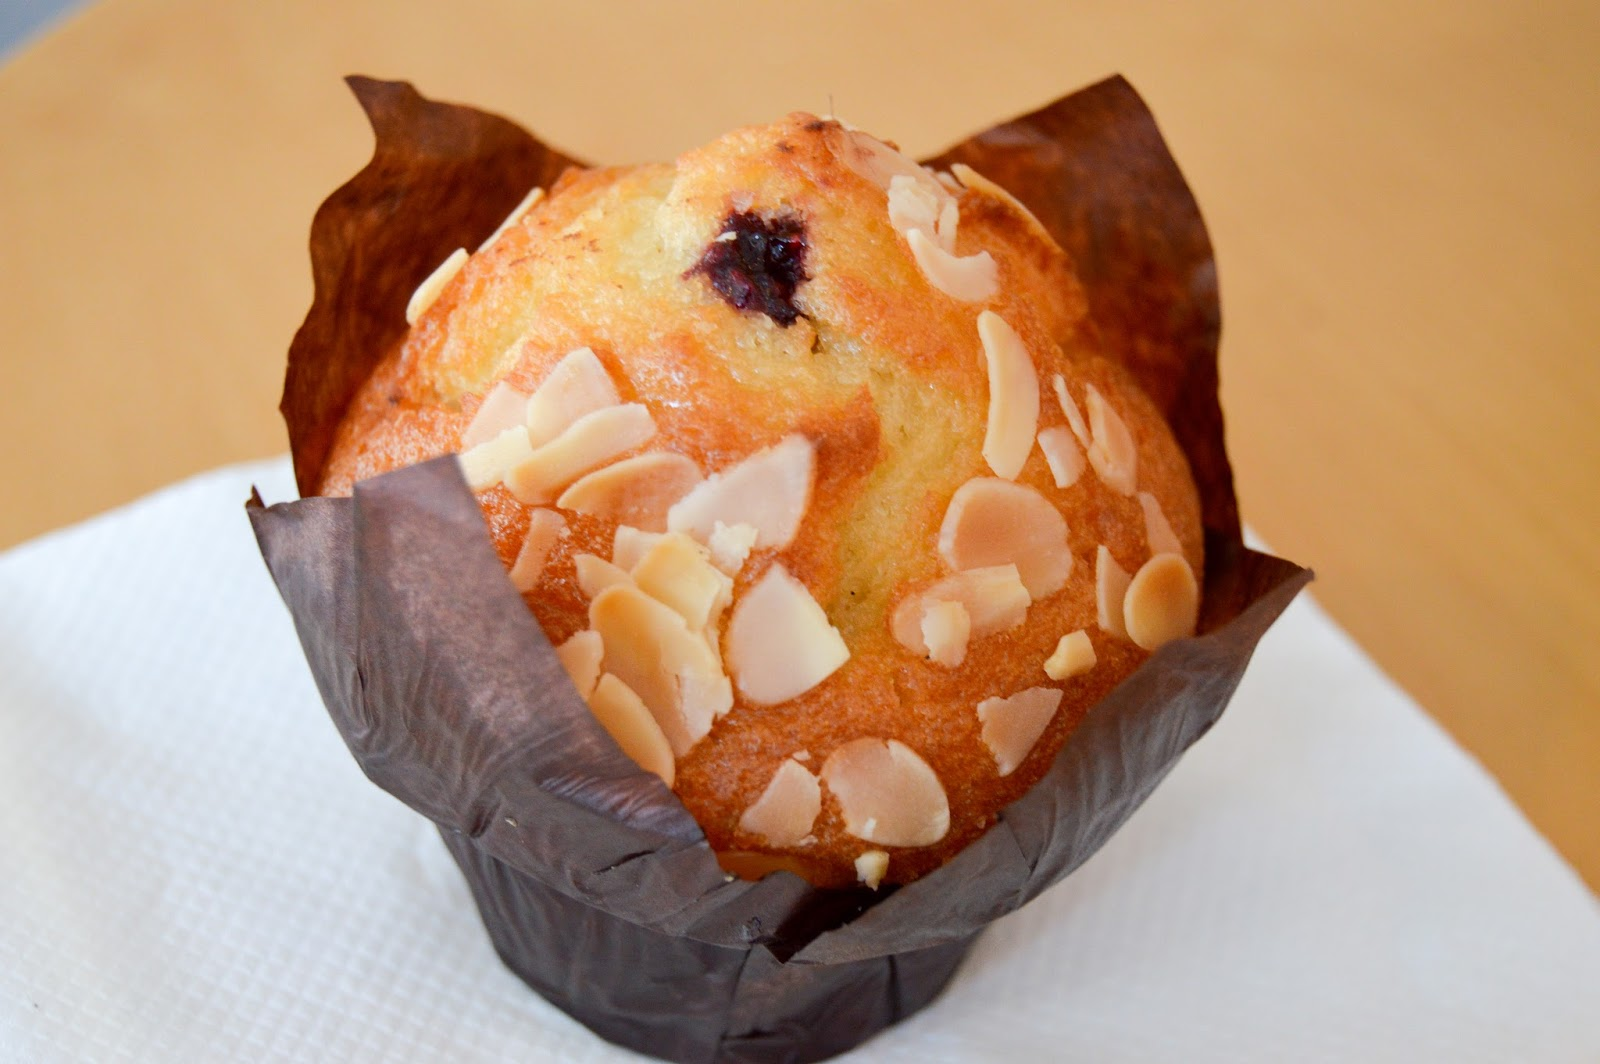 almond muffin free stock photos - royalty free images - free wallpapers